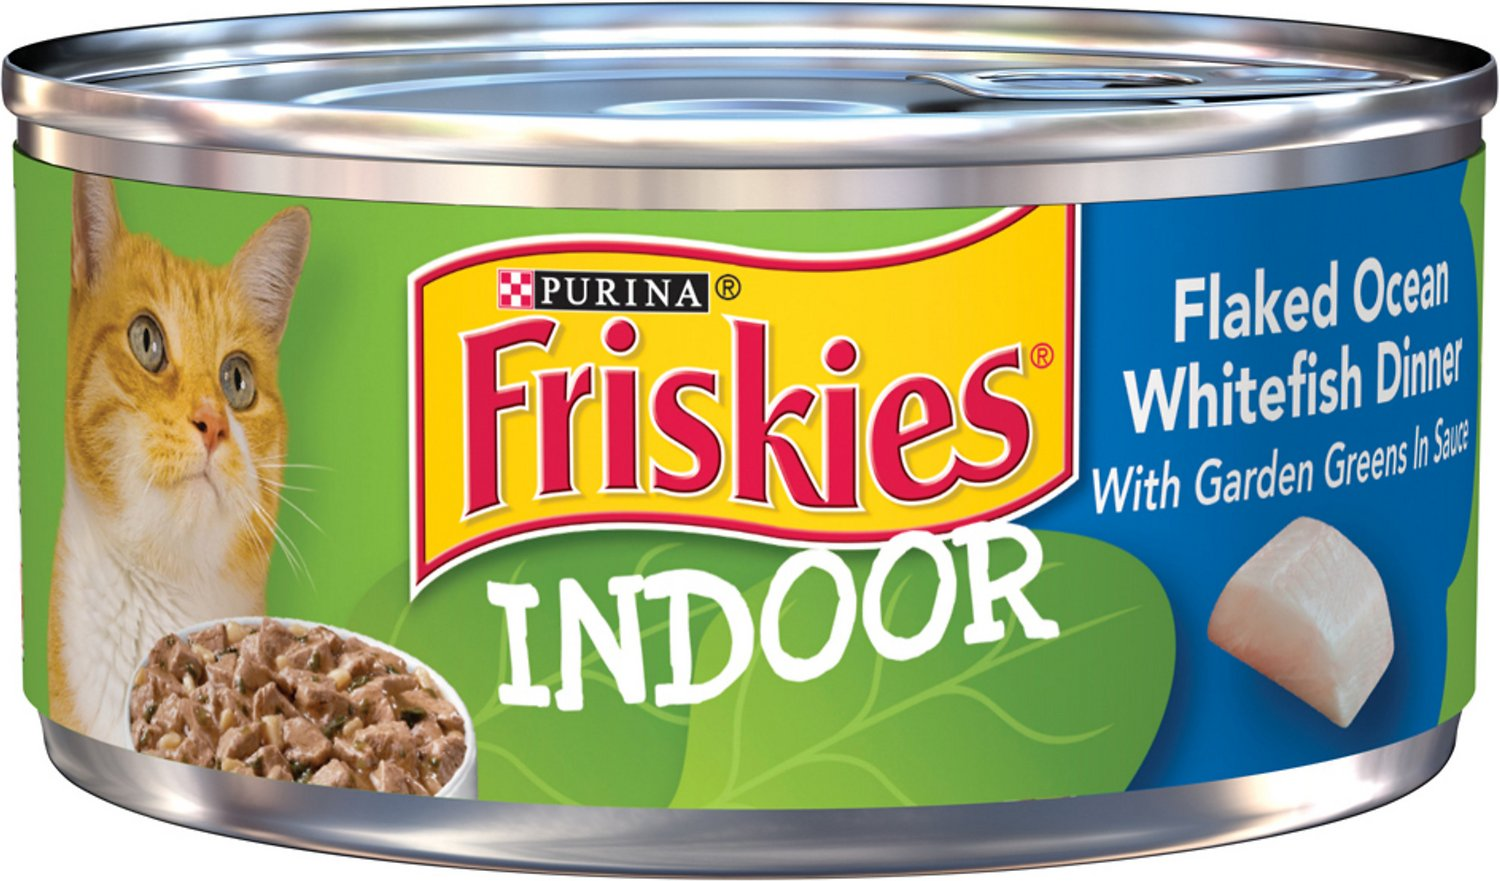 Friskies Indoor Flaked Ocean Whitefish Dinner Canned Cat Food,  5.5-oz